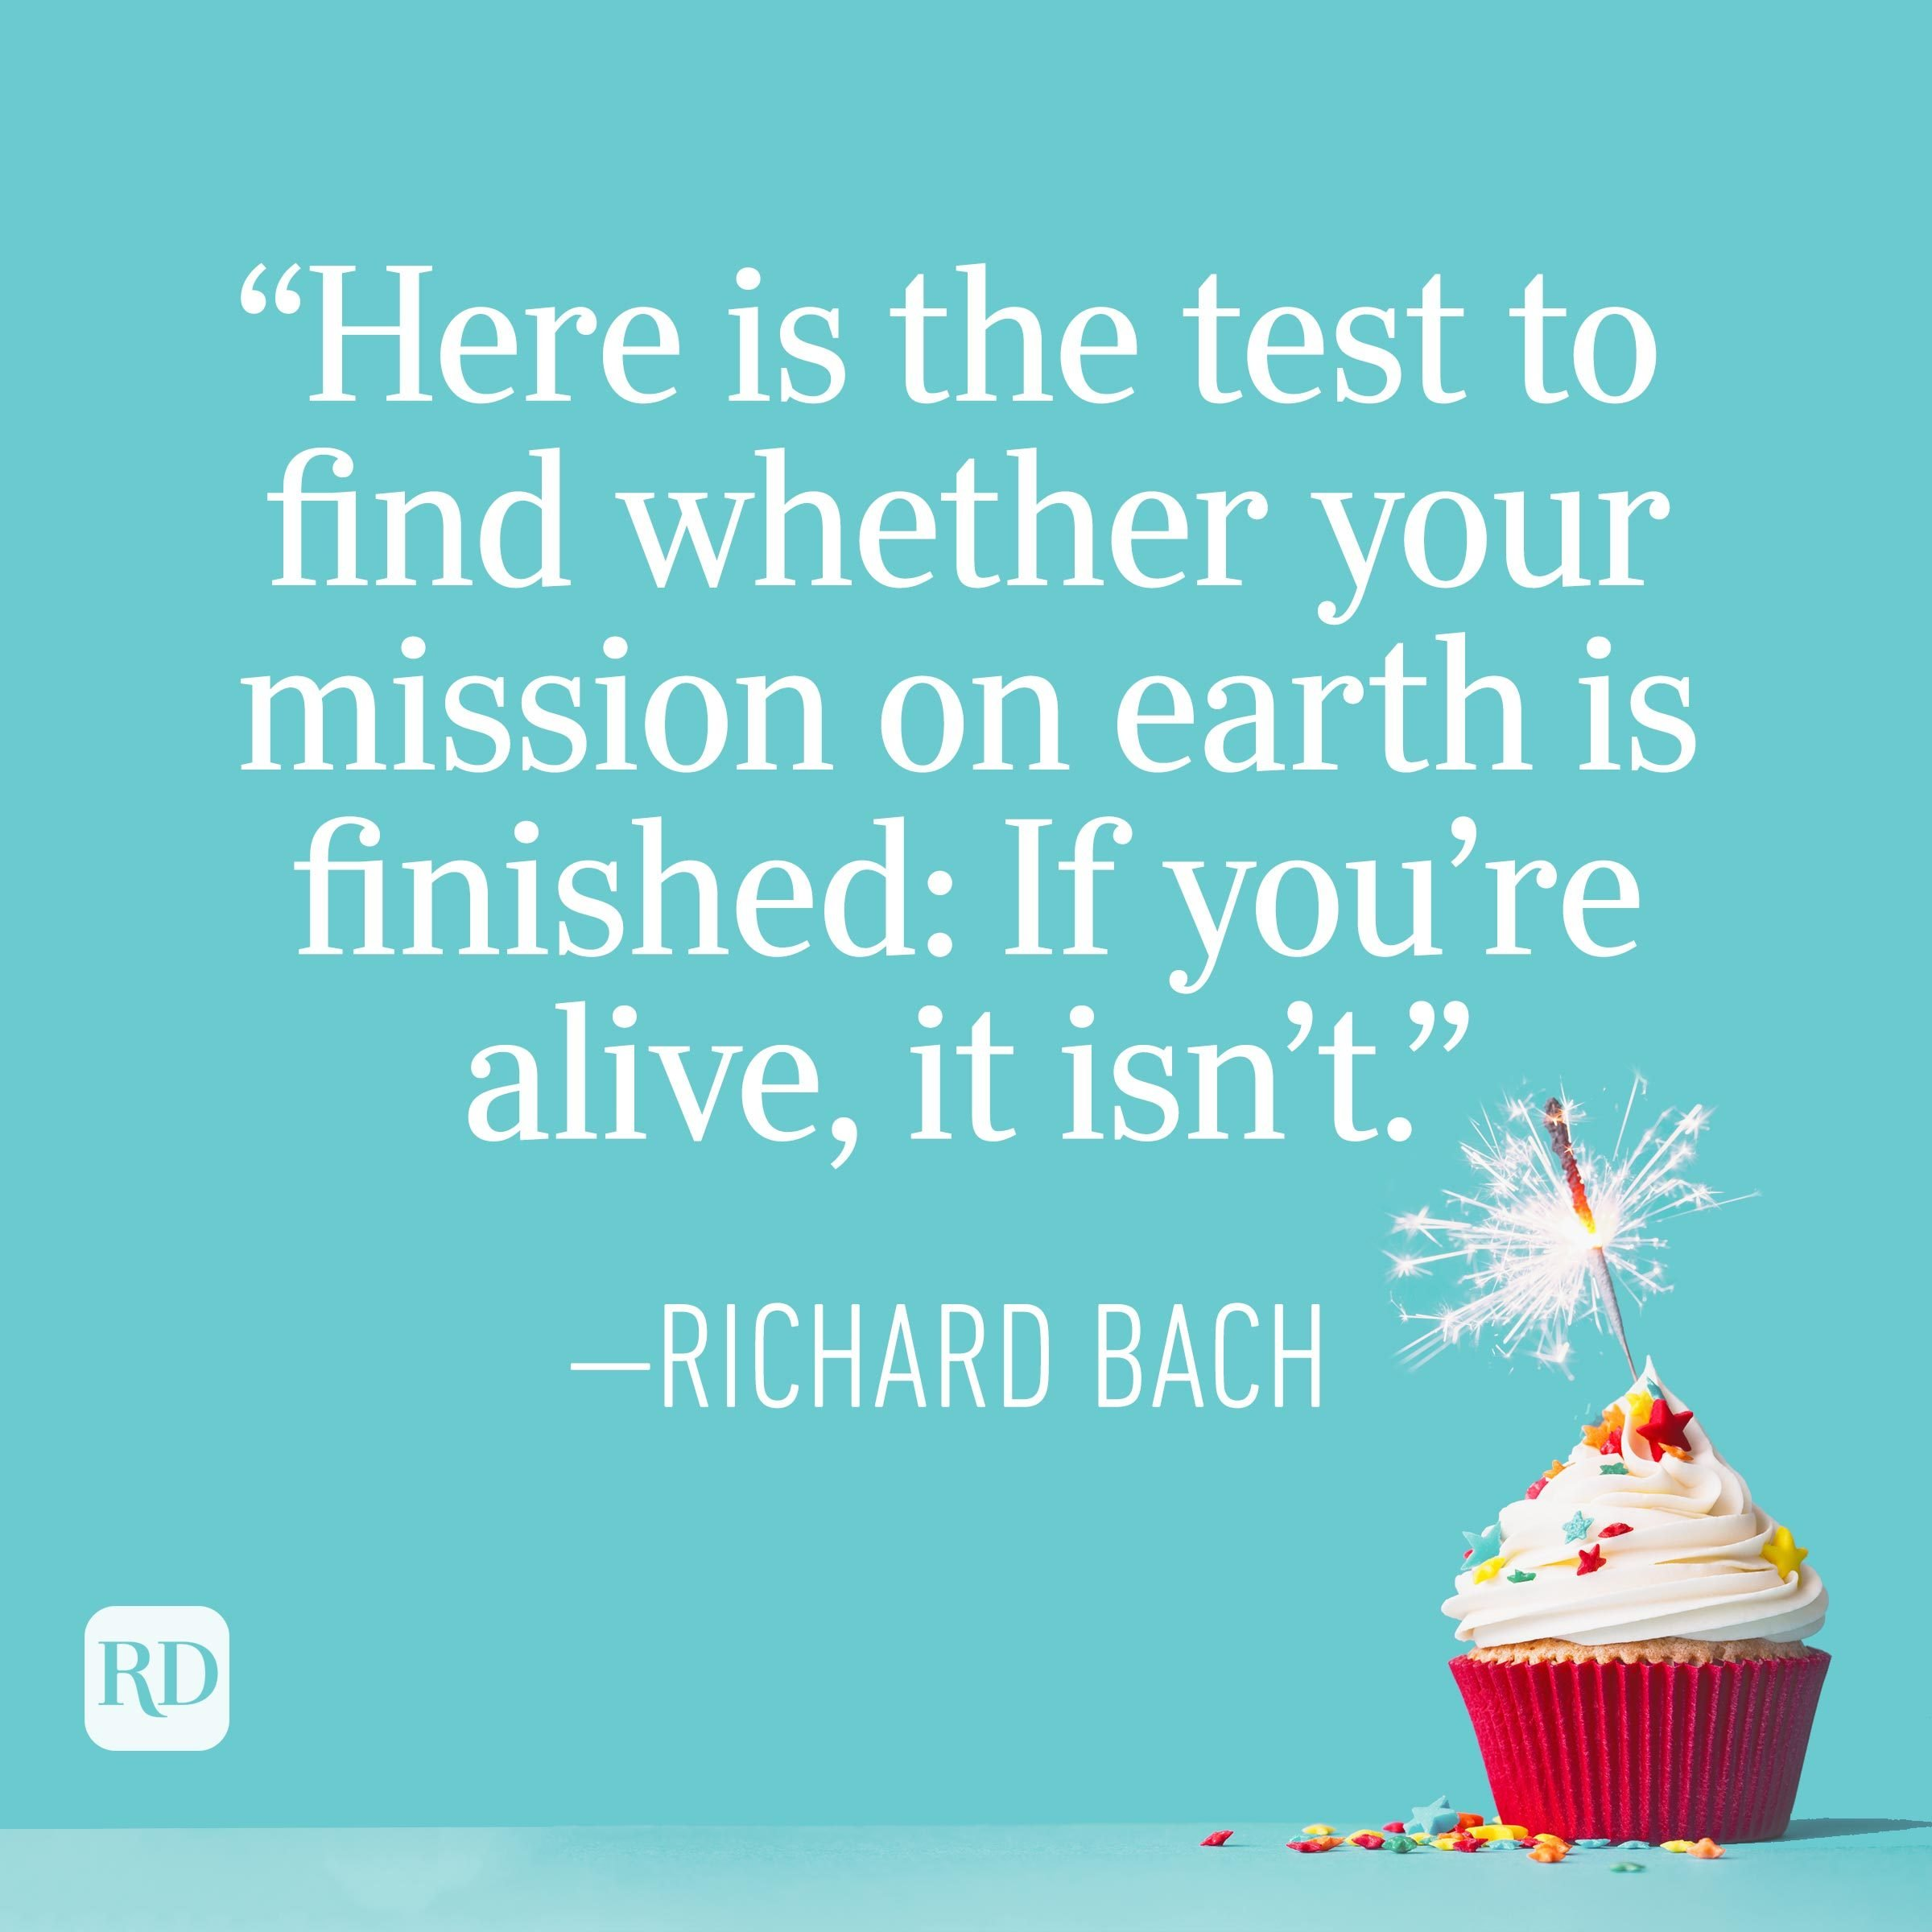 """""""Here is the test to find whether your mission on earth is finished: If you're alive, it isn't."""" —Richard Bach"""